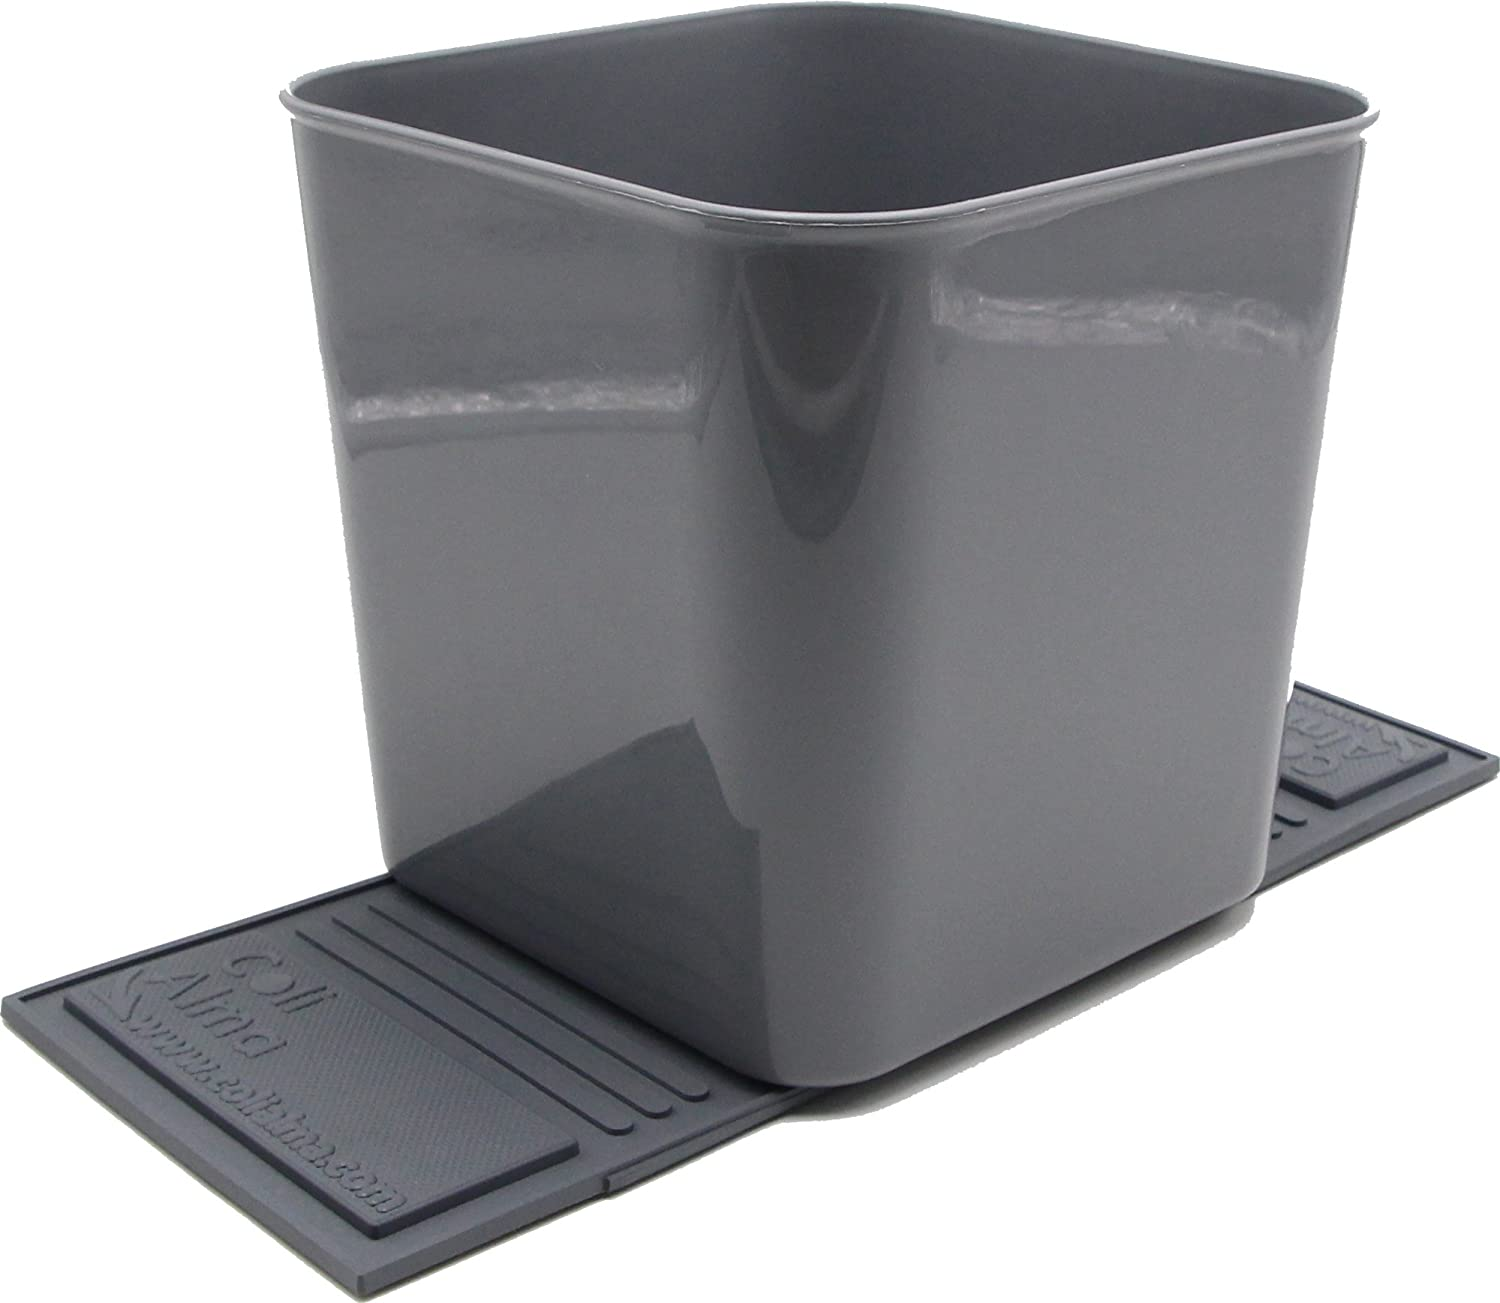 Auto Car Vehicle Garbage Can Trash Bin Waste Container Quality Plastic EXTRA LARGE 1 Gallon 4 Liter Quality For Life